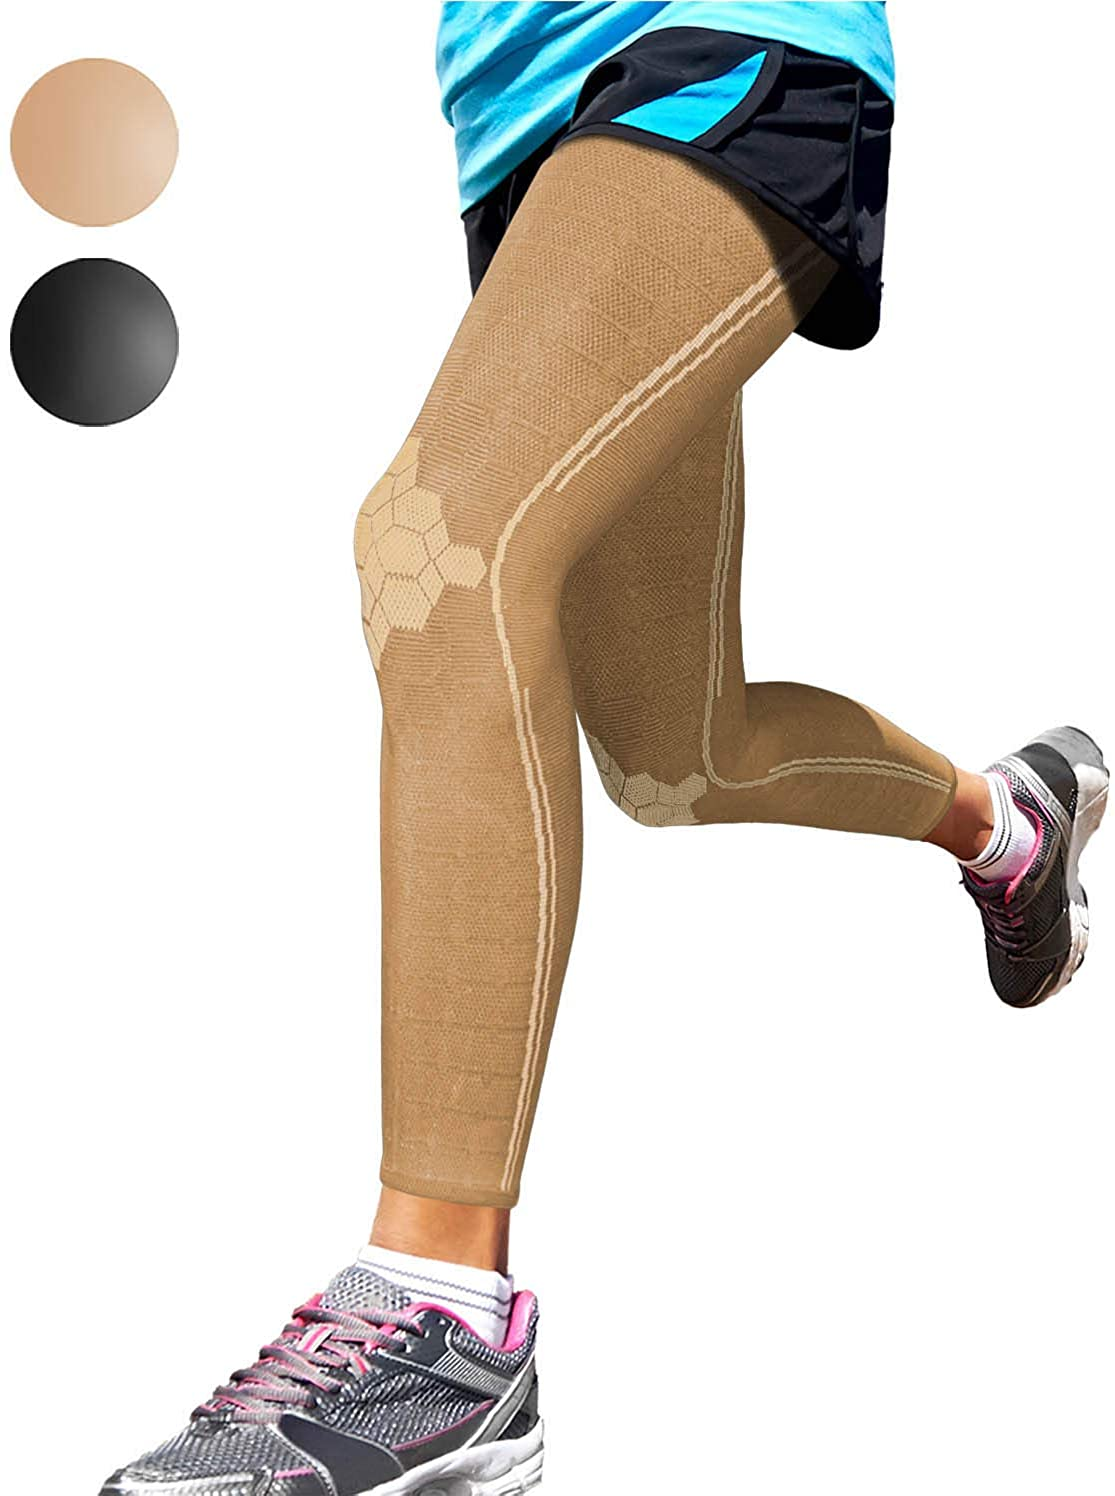 Sparthos Leg Compression Sleeves - Aid Support Direct Some reservation store A and in Recovery